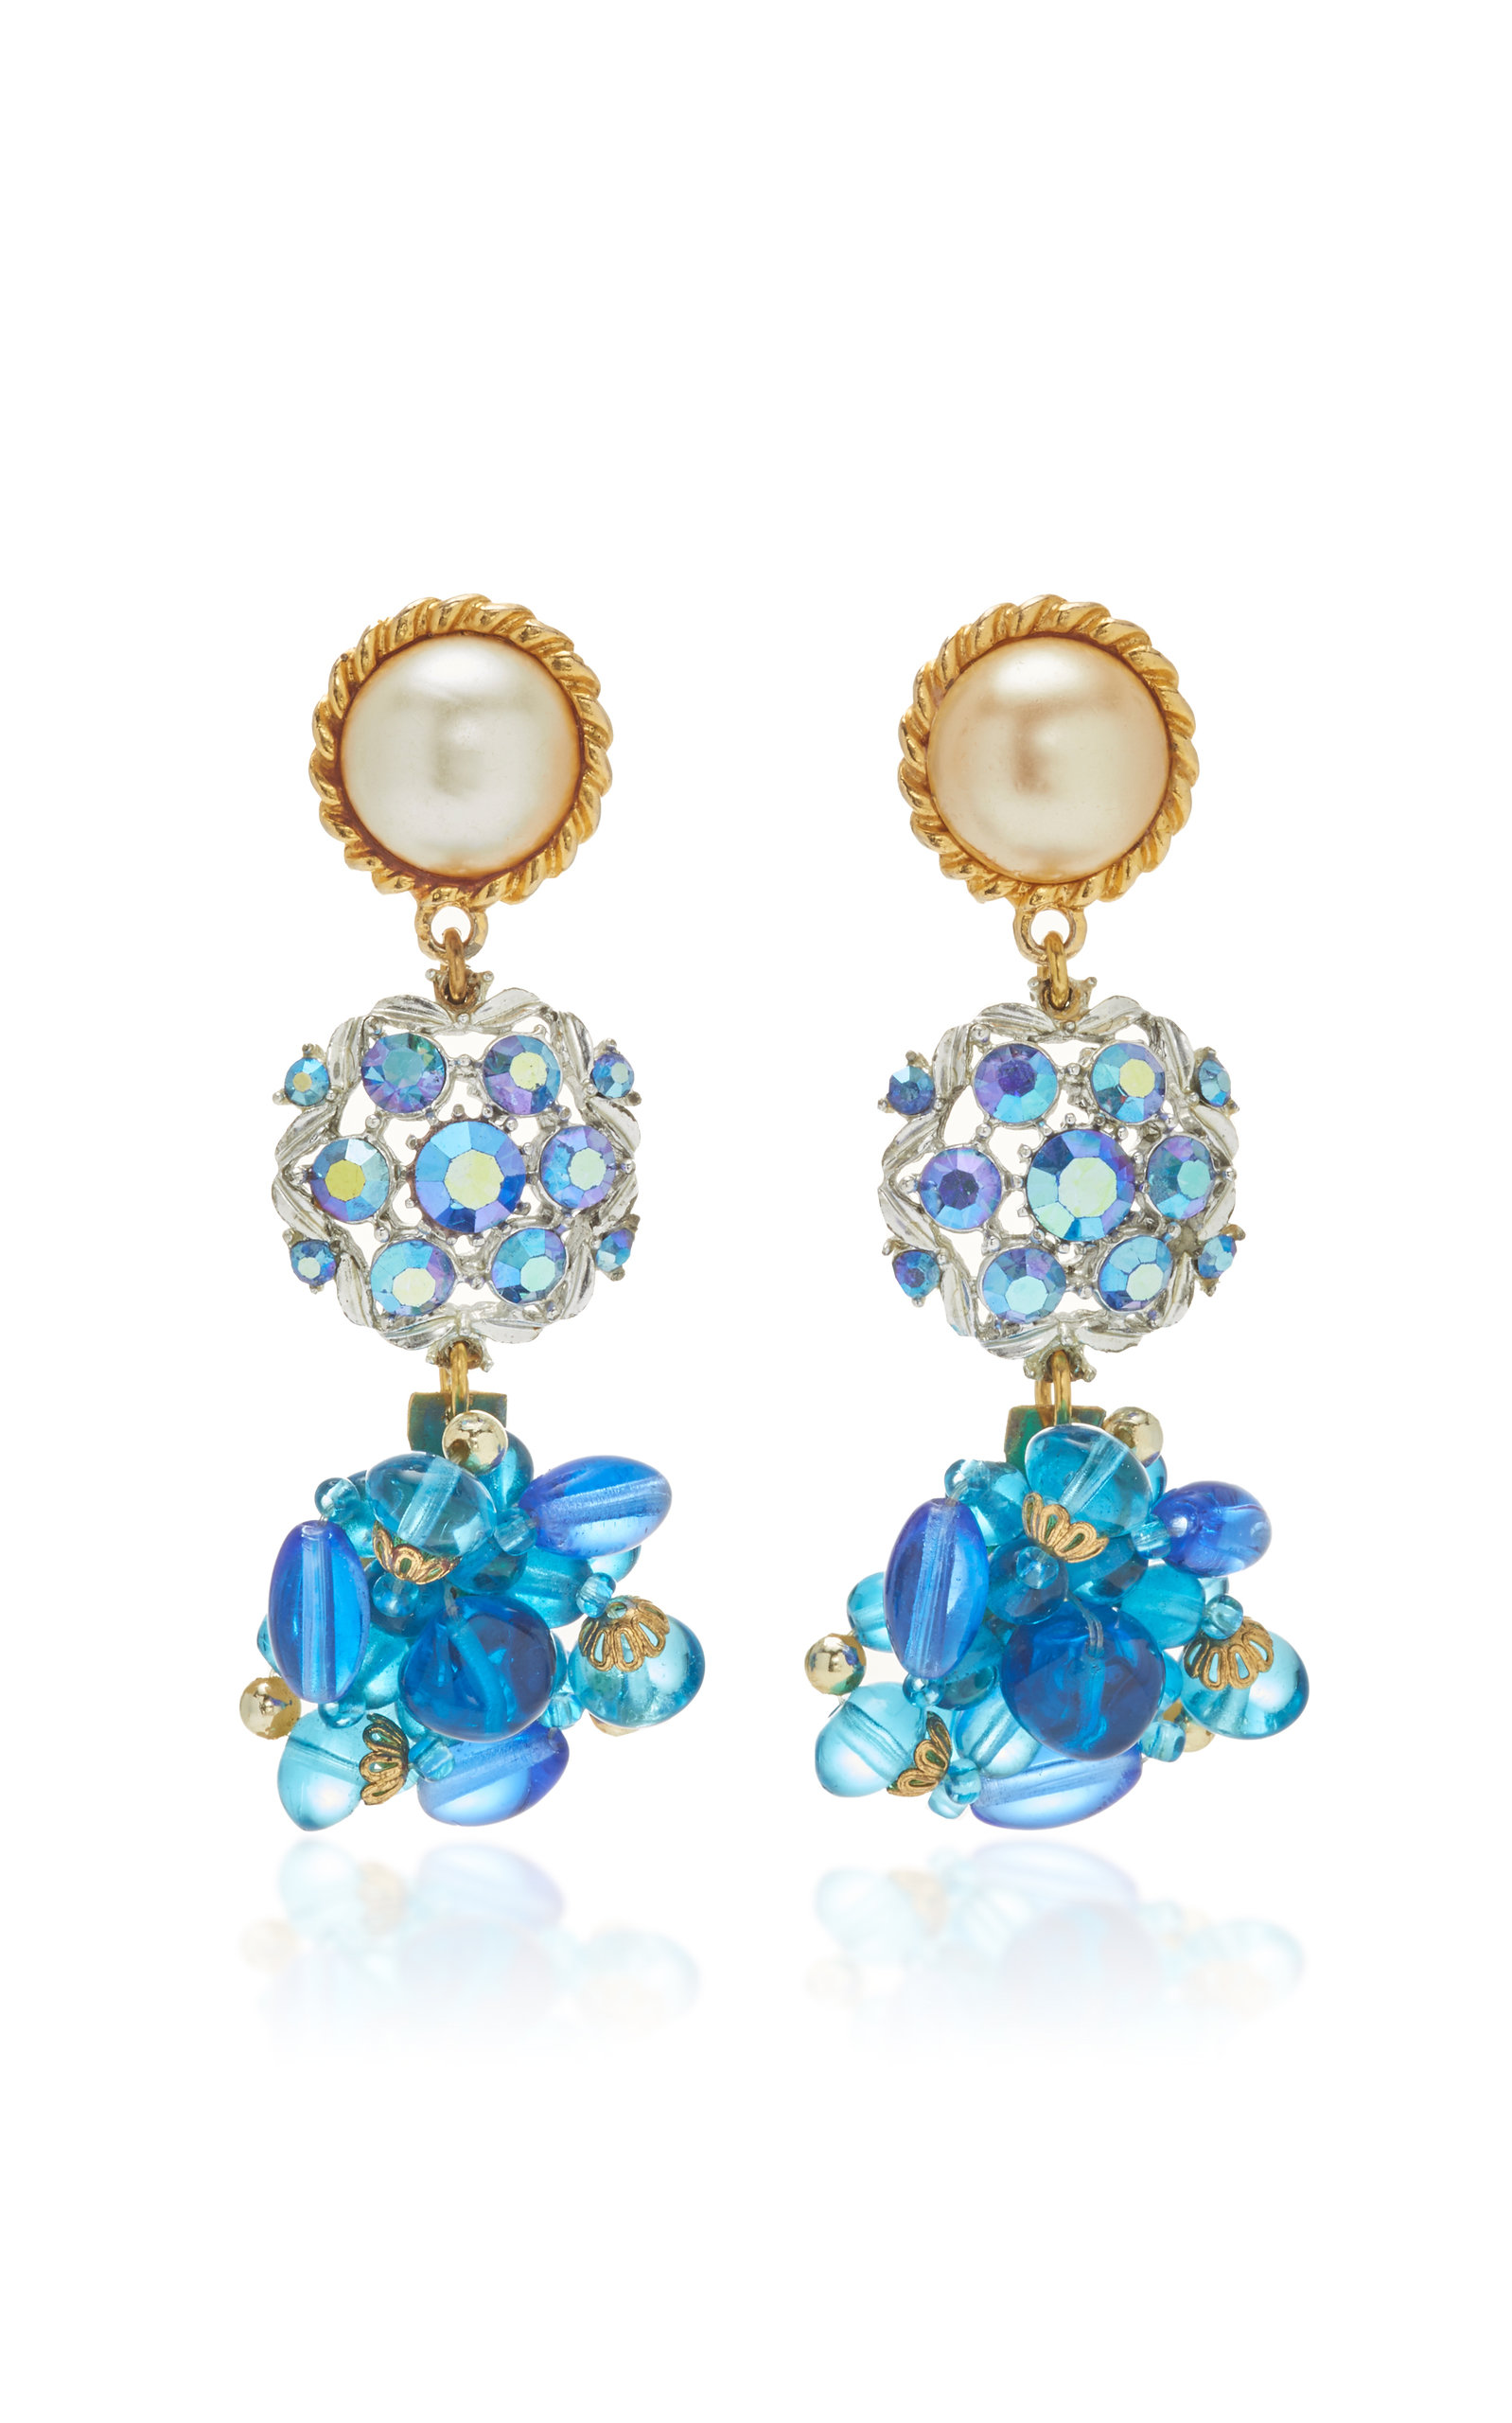 LULU FROST ONE-OF-A-KIND PEARL AND AURORA BOREALIS FLORAL EARRING